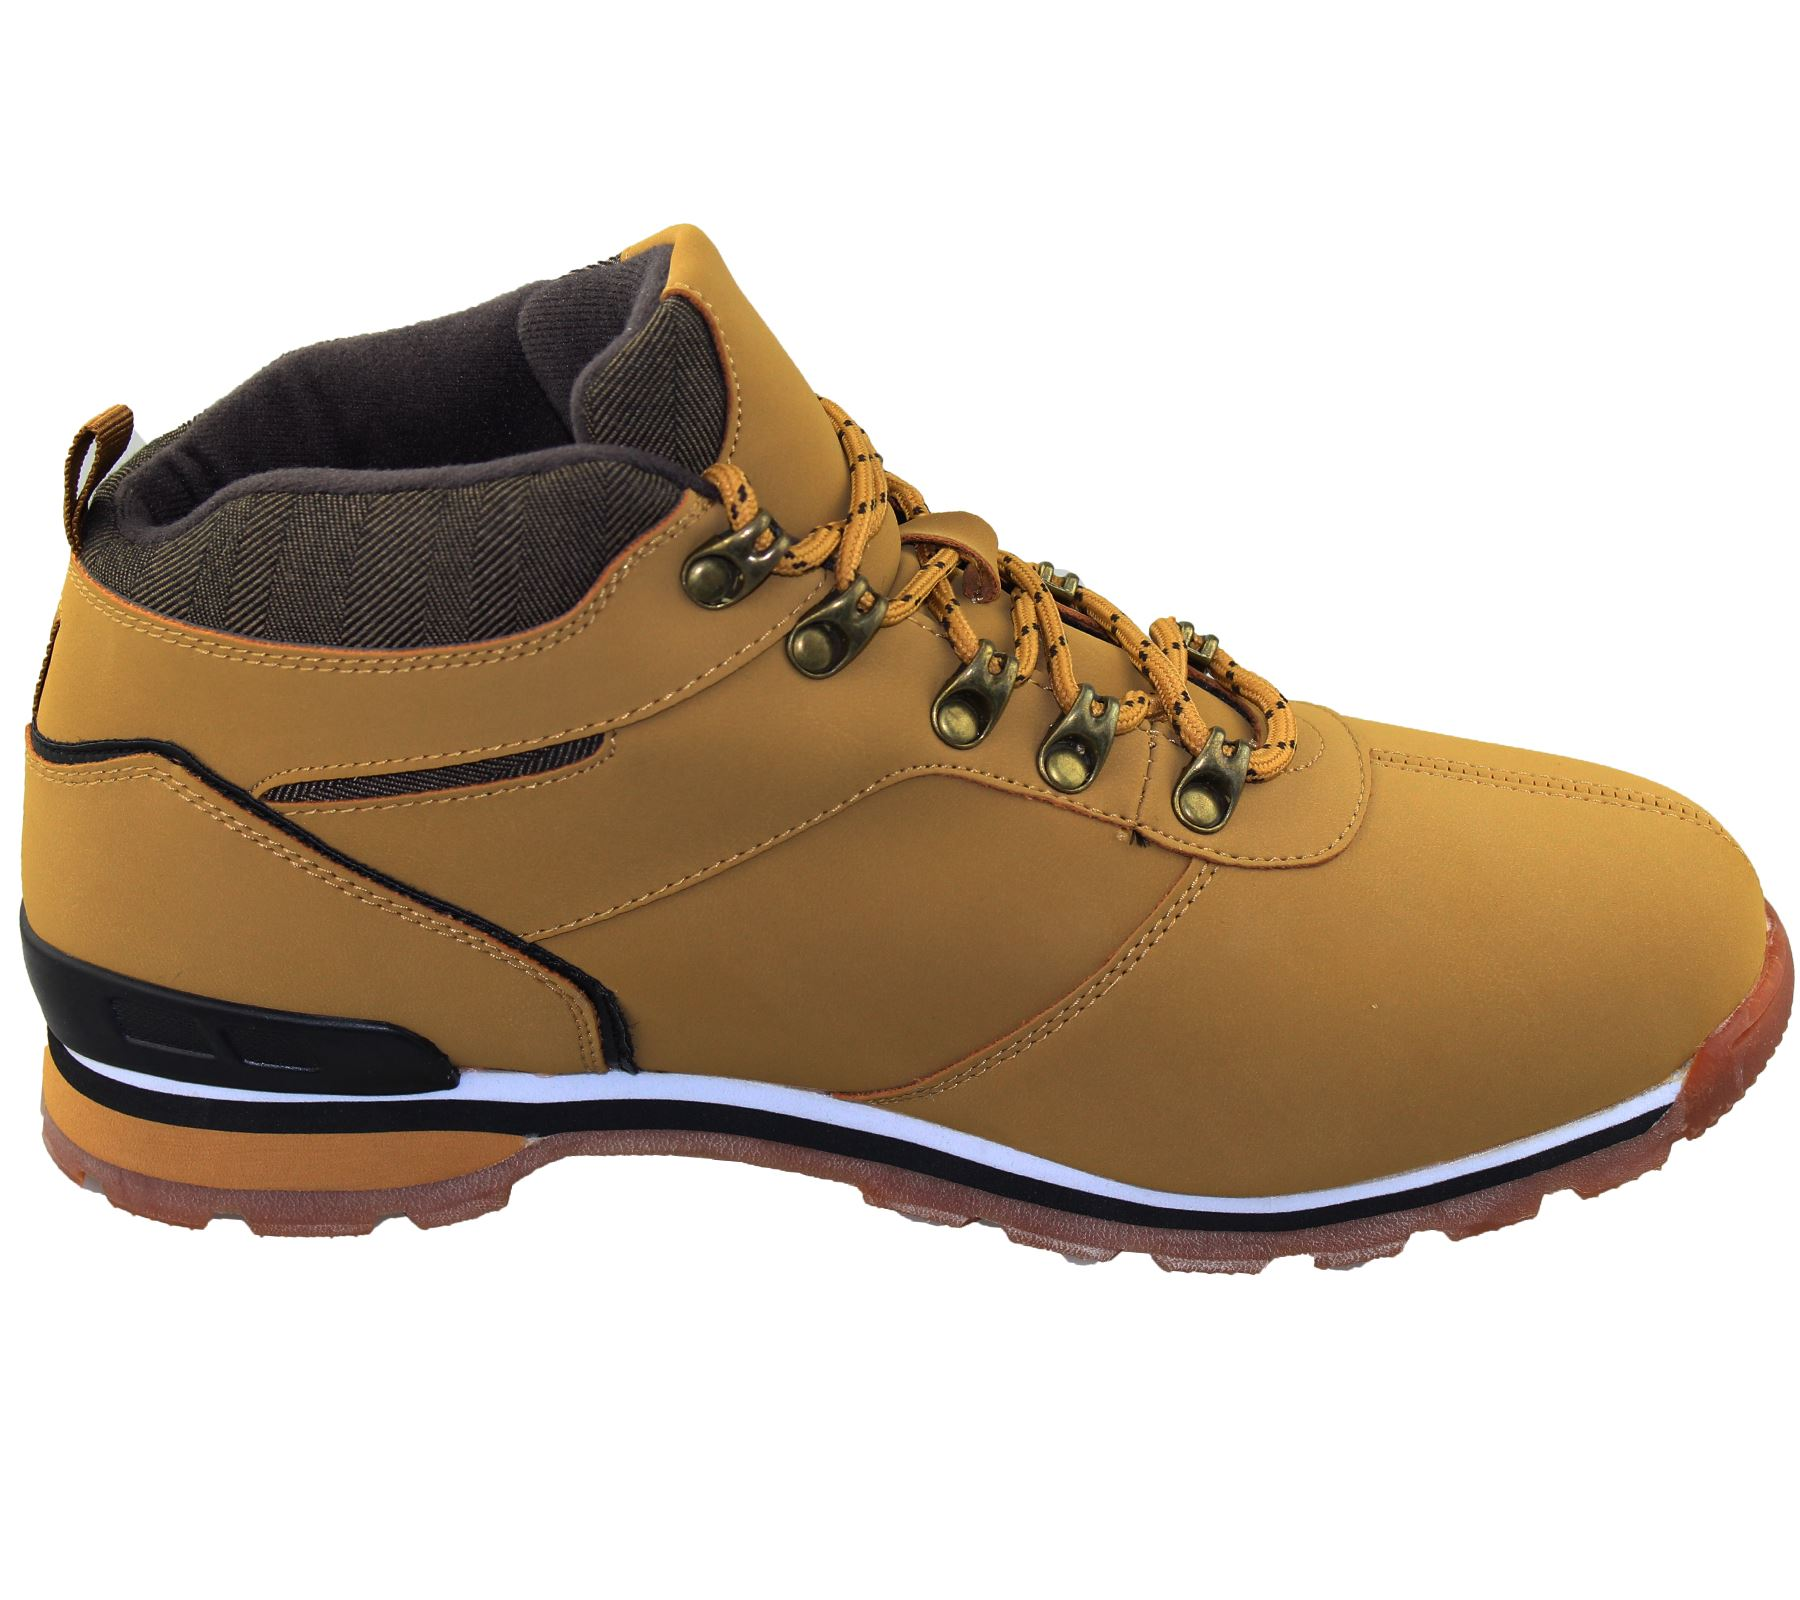 mens lace up boots winter combat hiking work high top